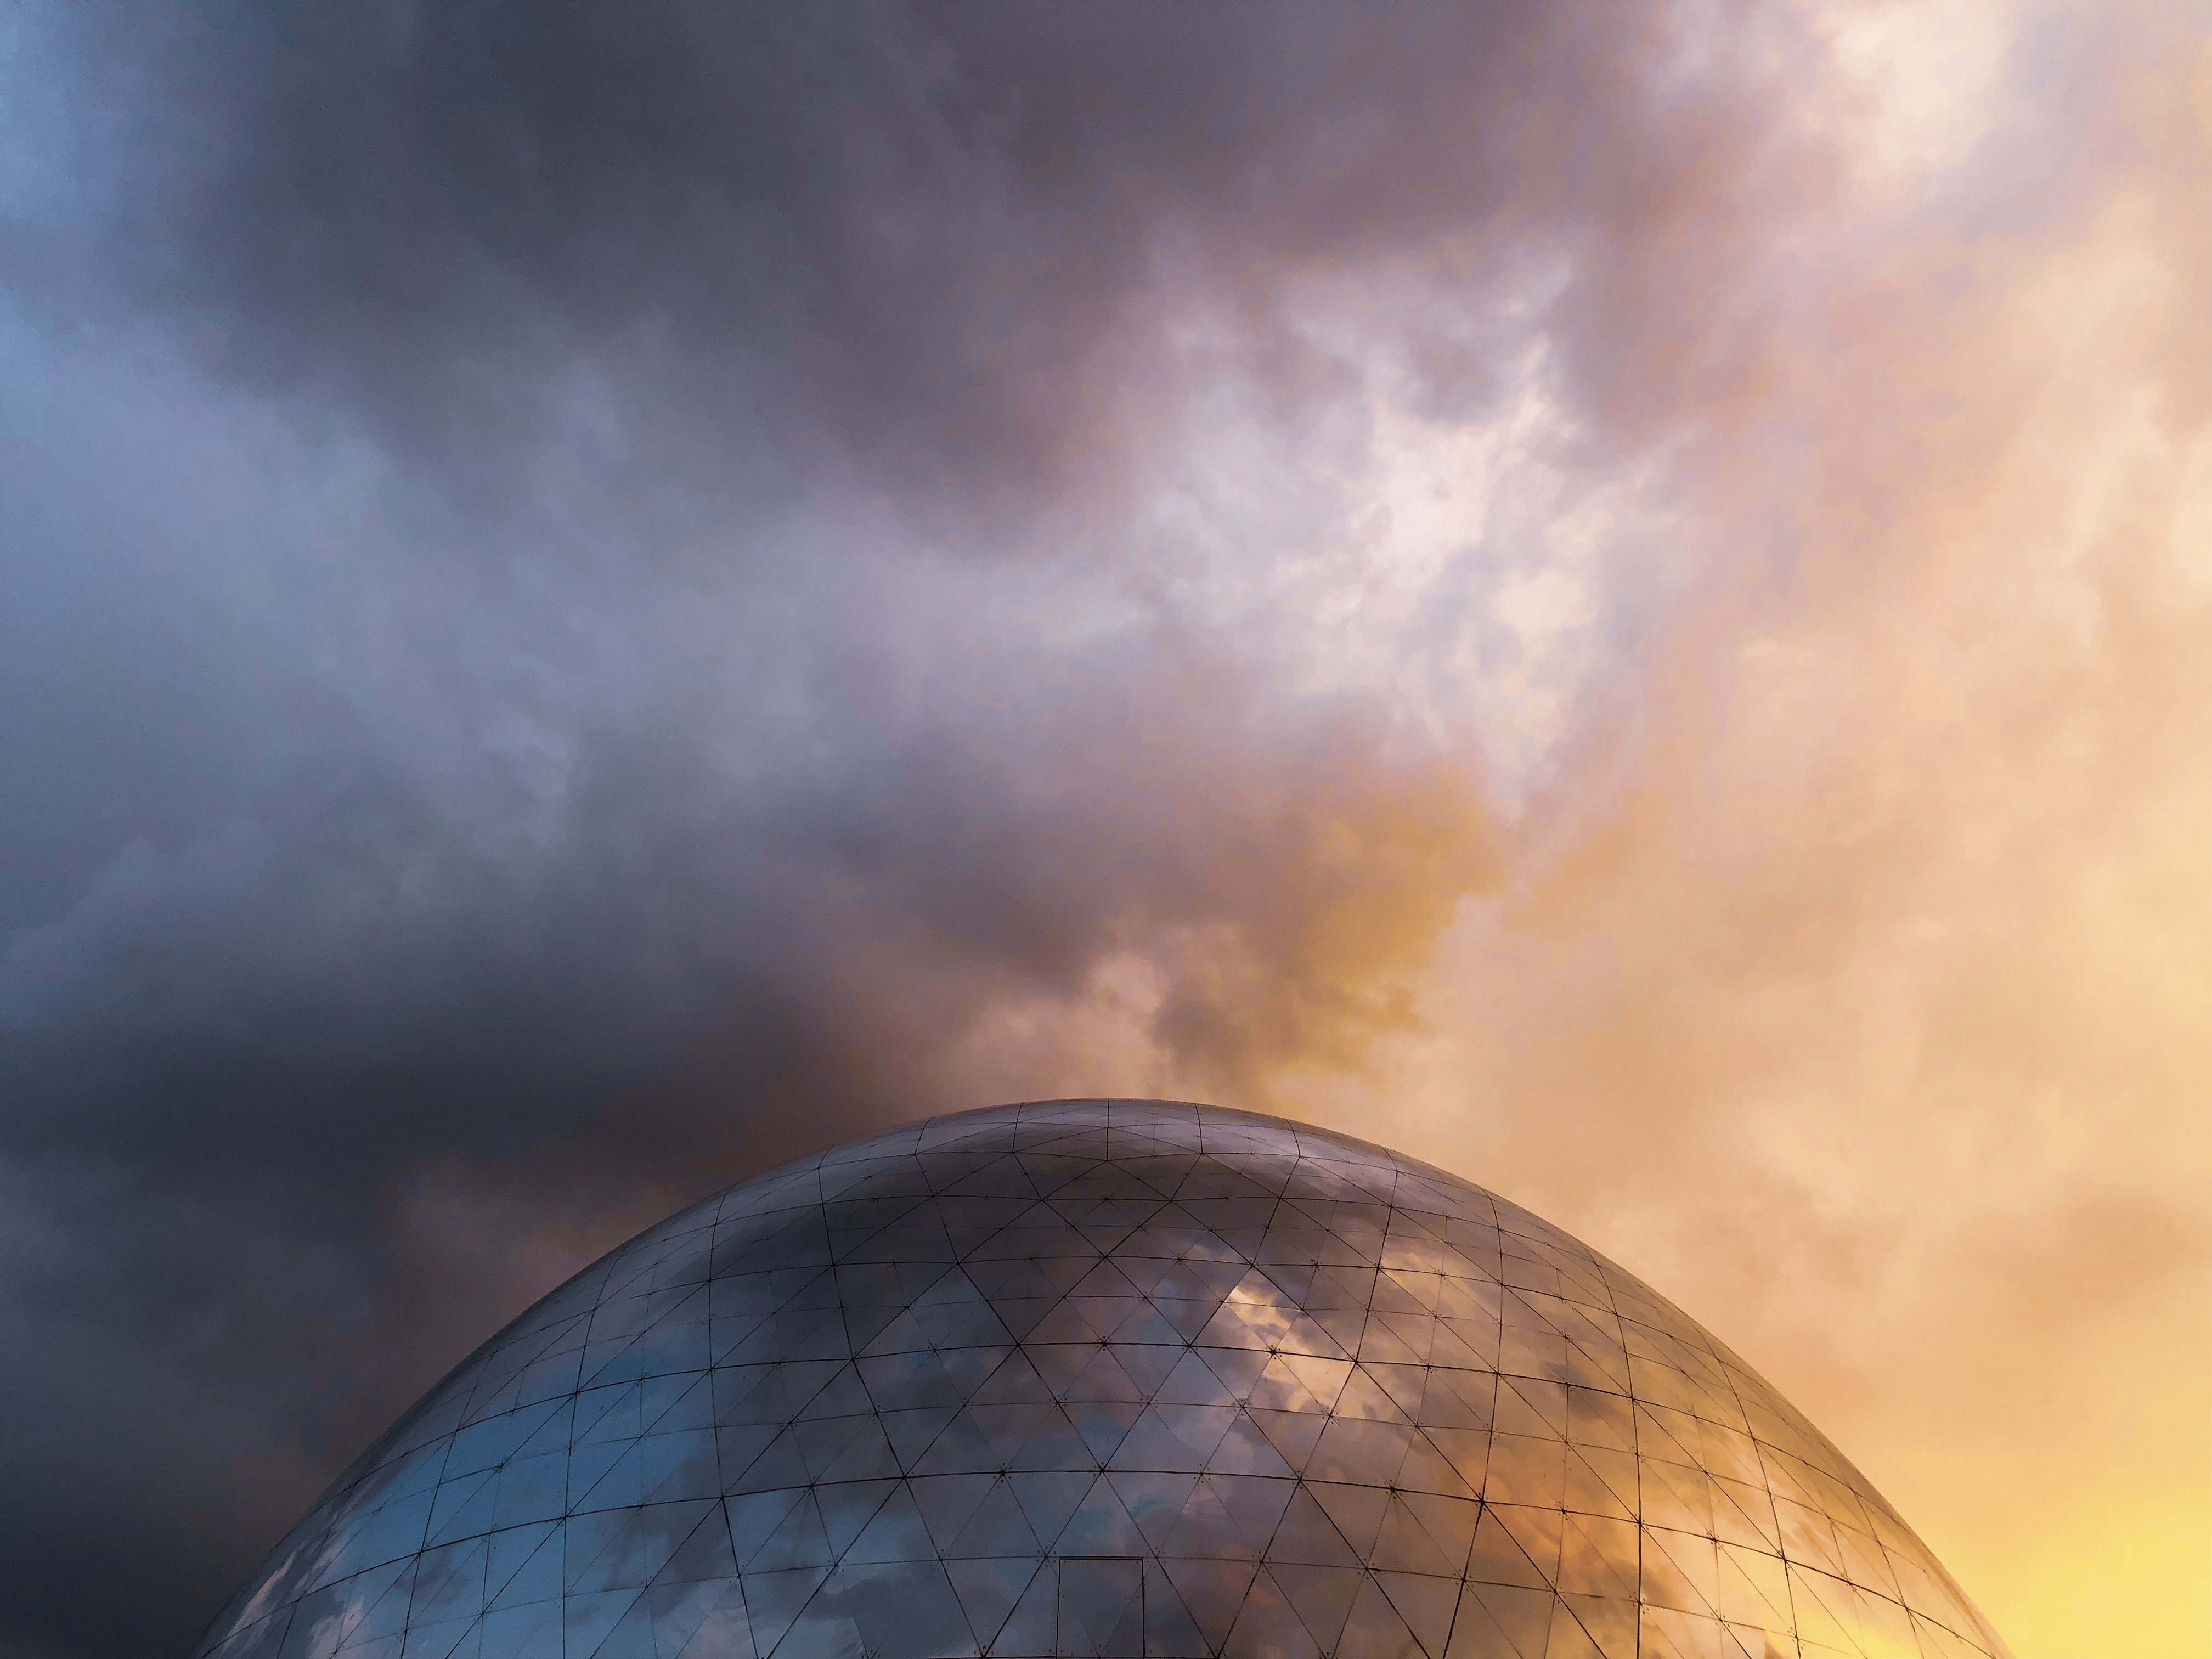 gray glass dome with dark clouds above it